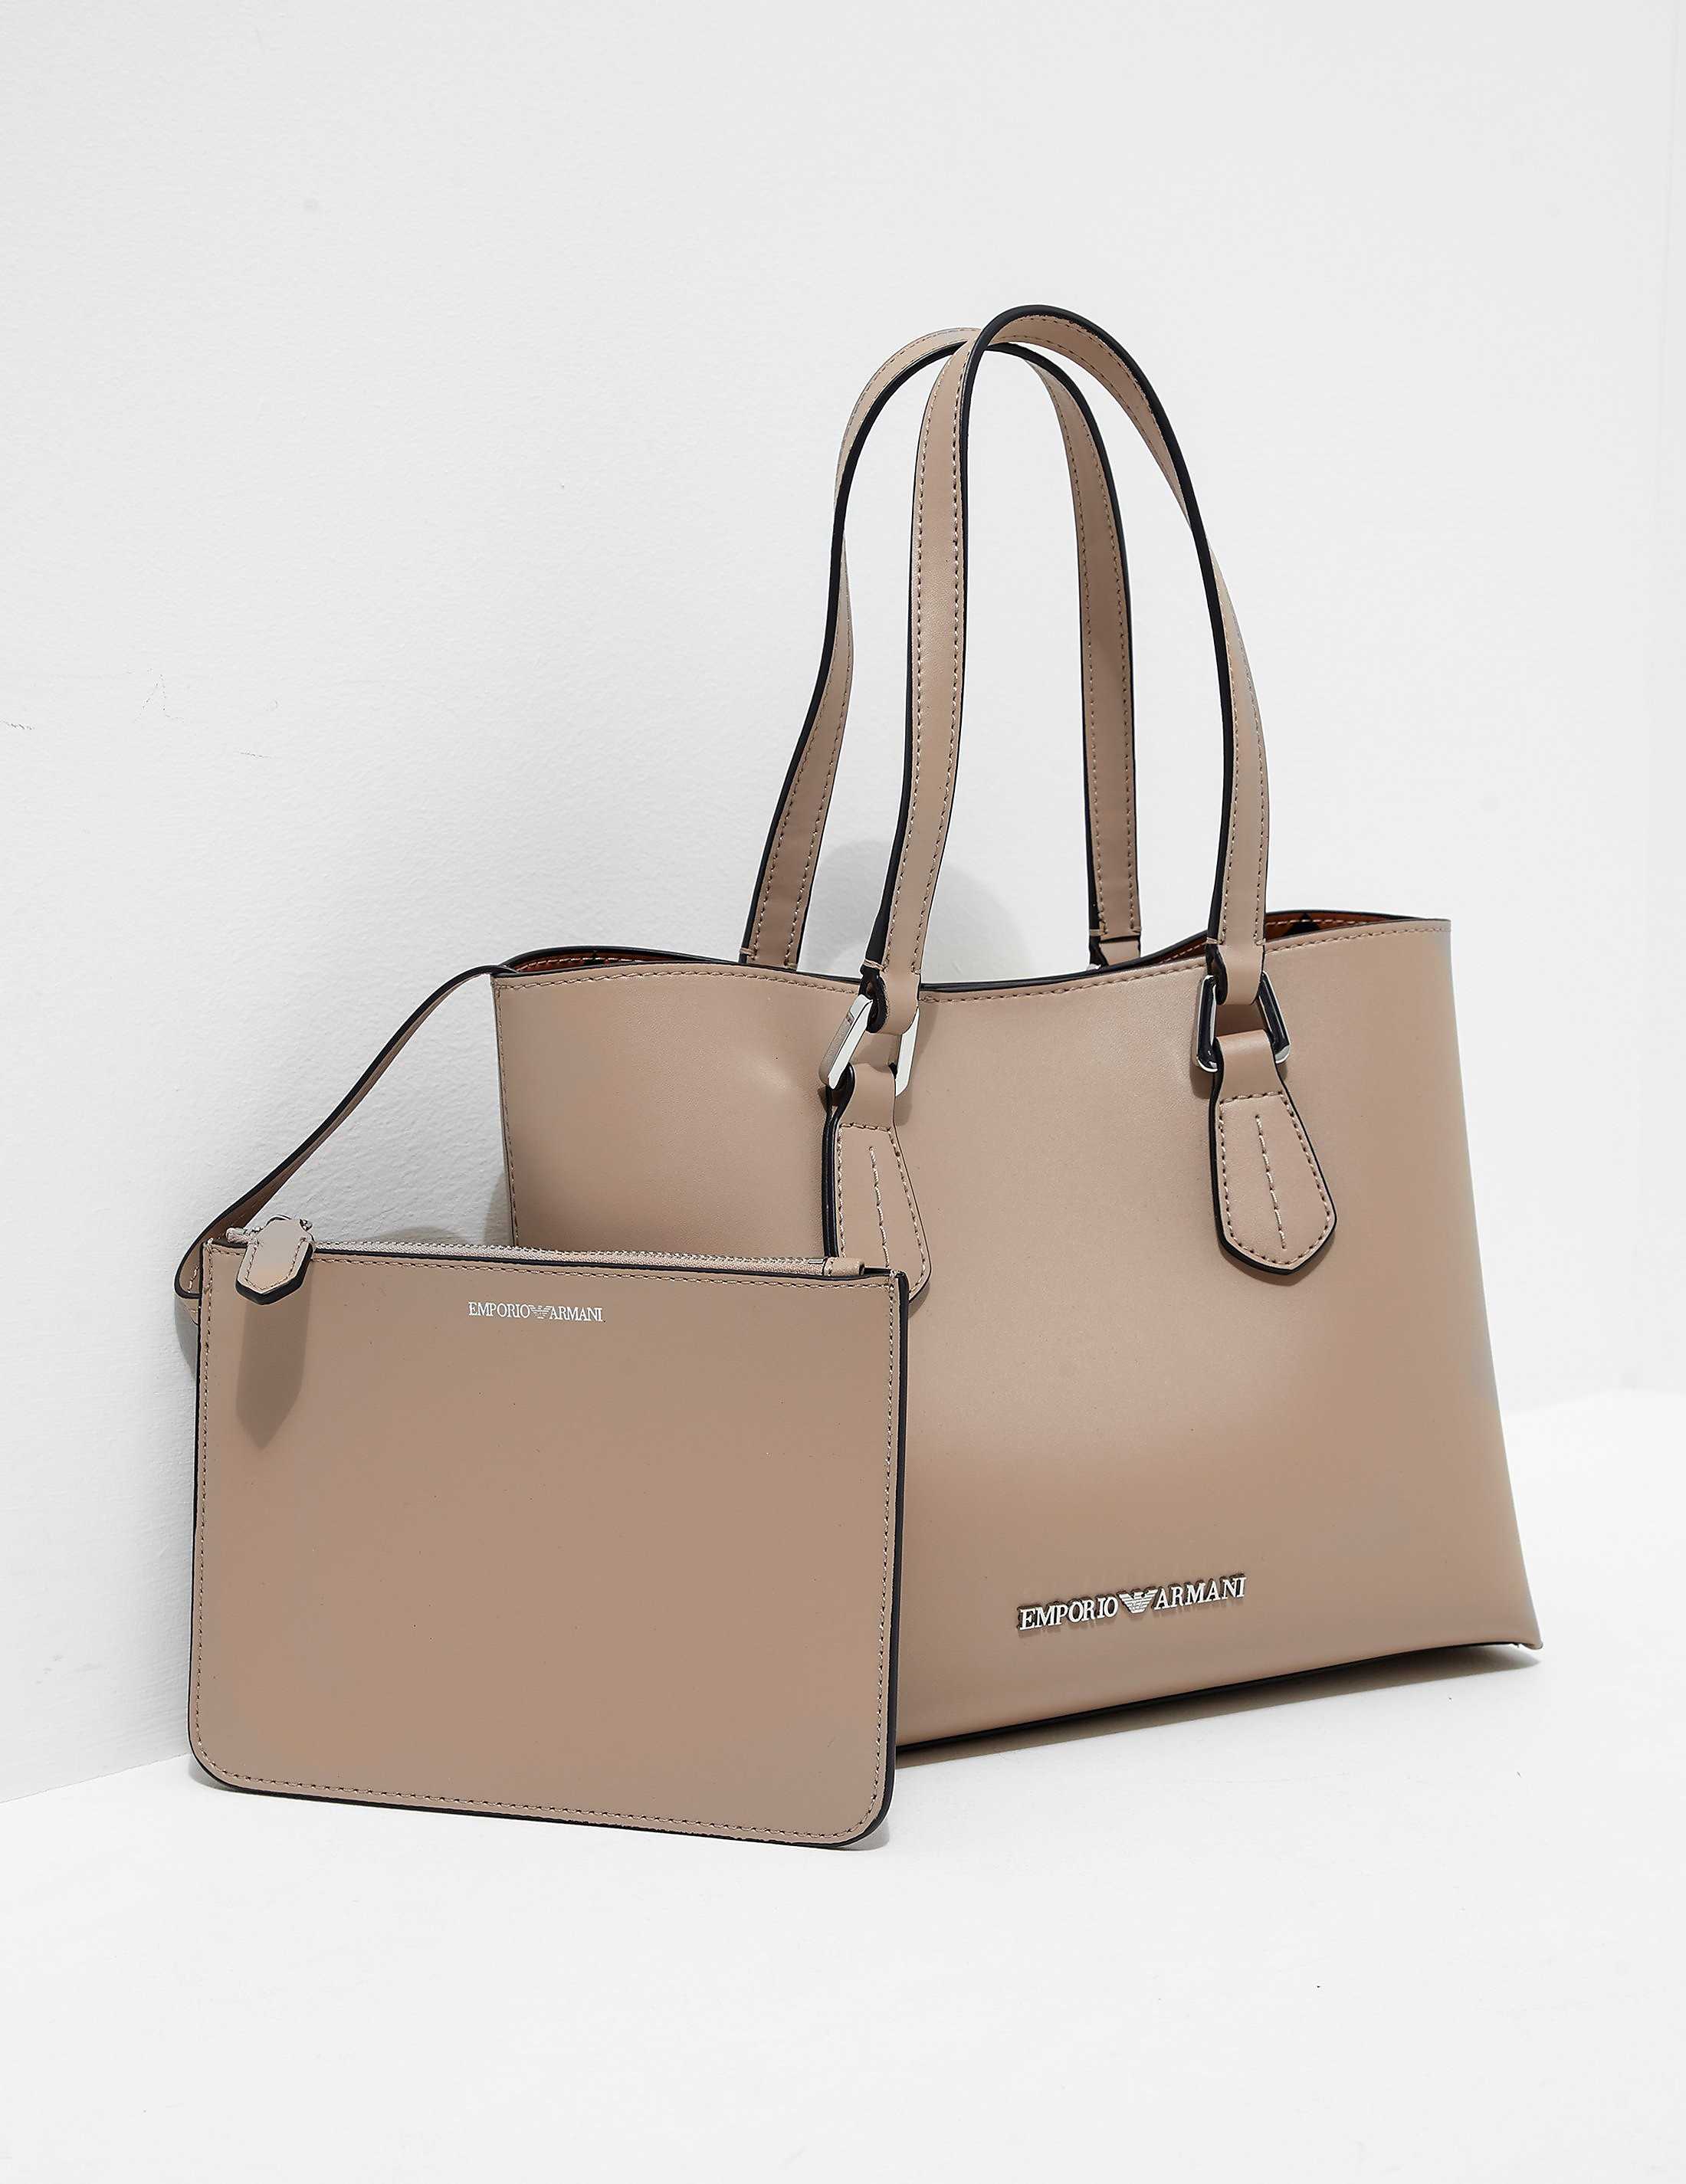 Emporio Armani Wilma Medium Shopper Bag